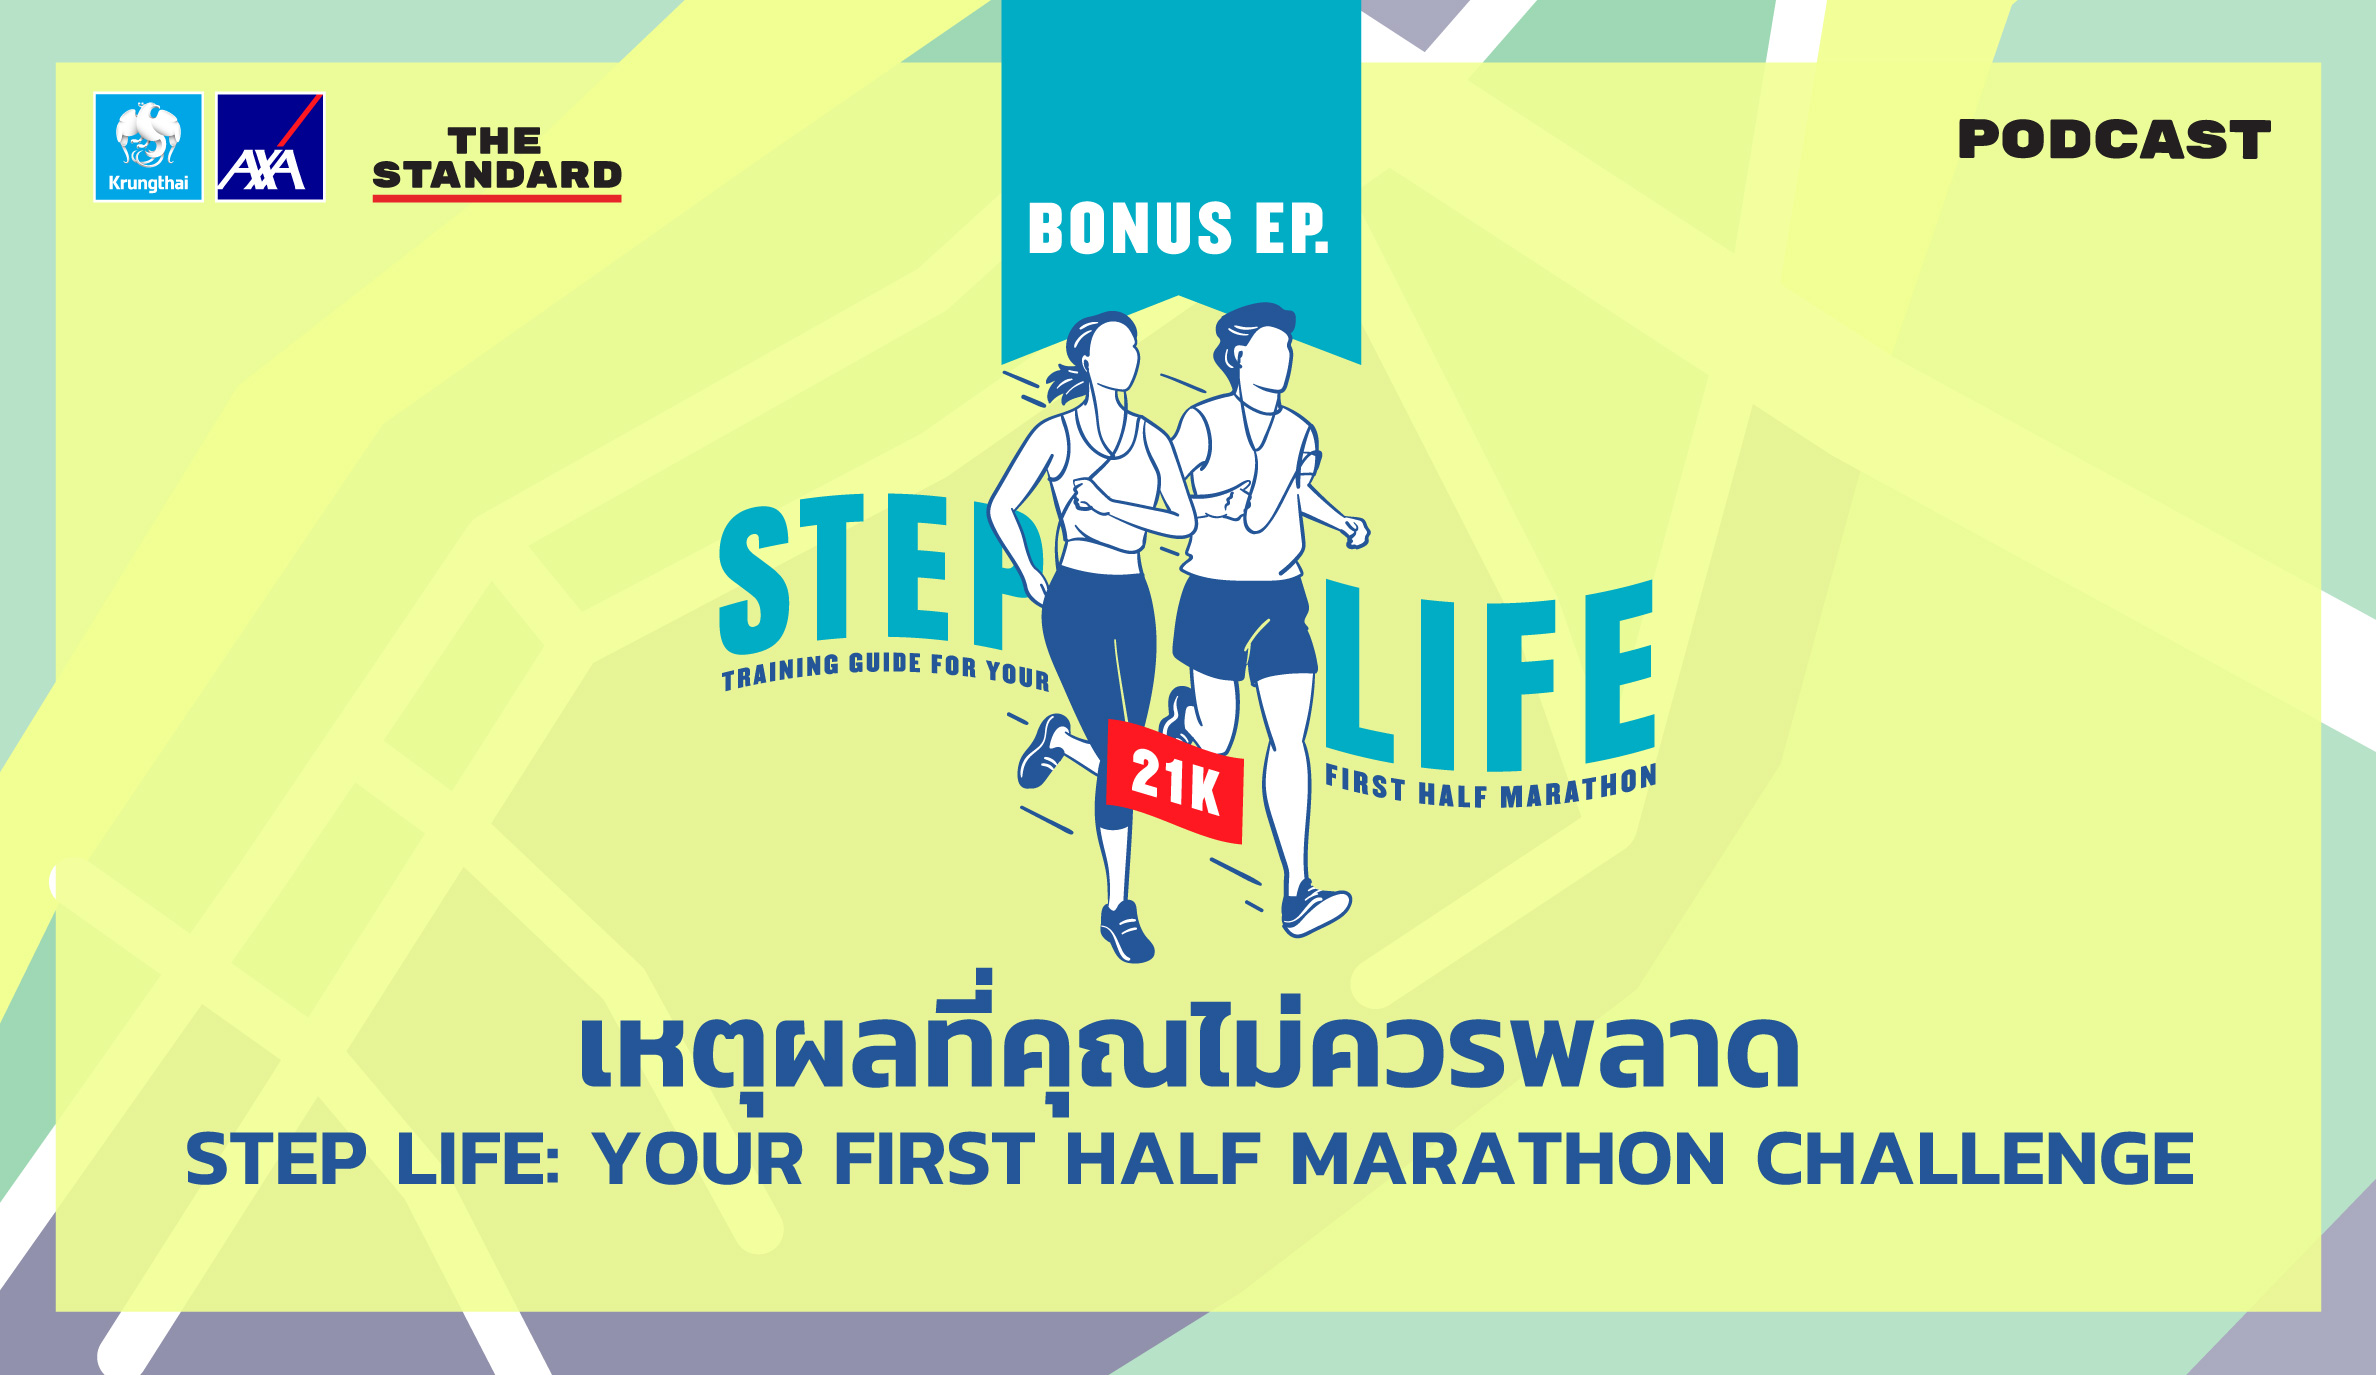 STEPLIFE 21K EP BONUS_1